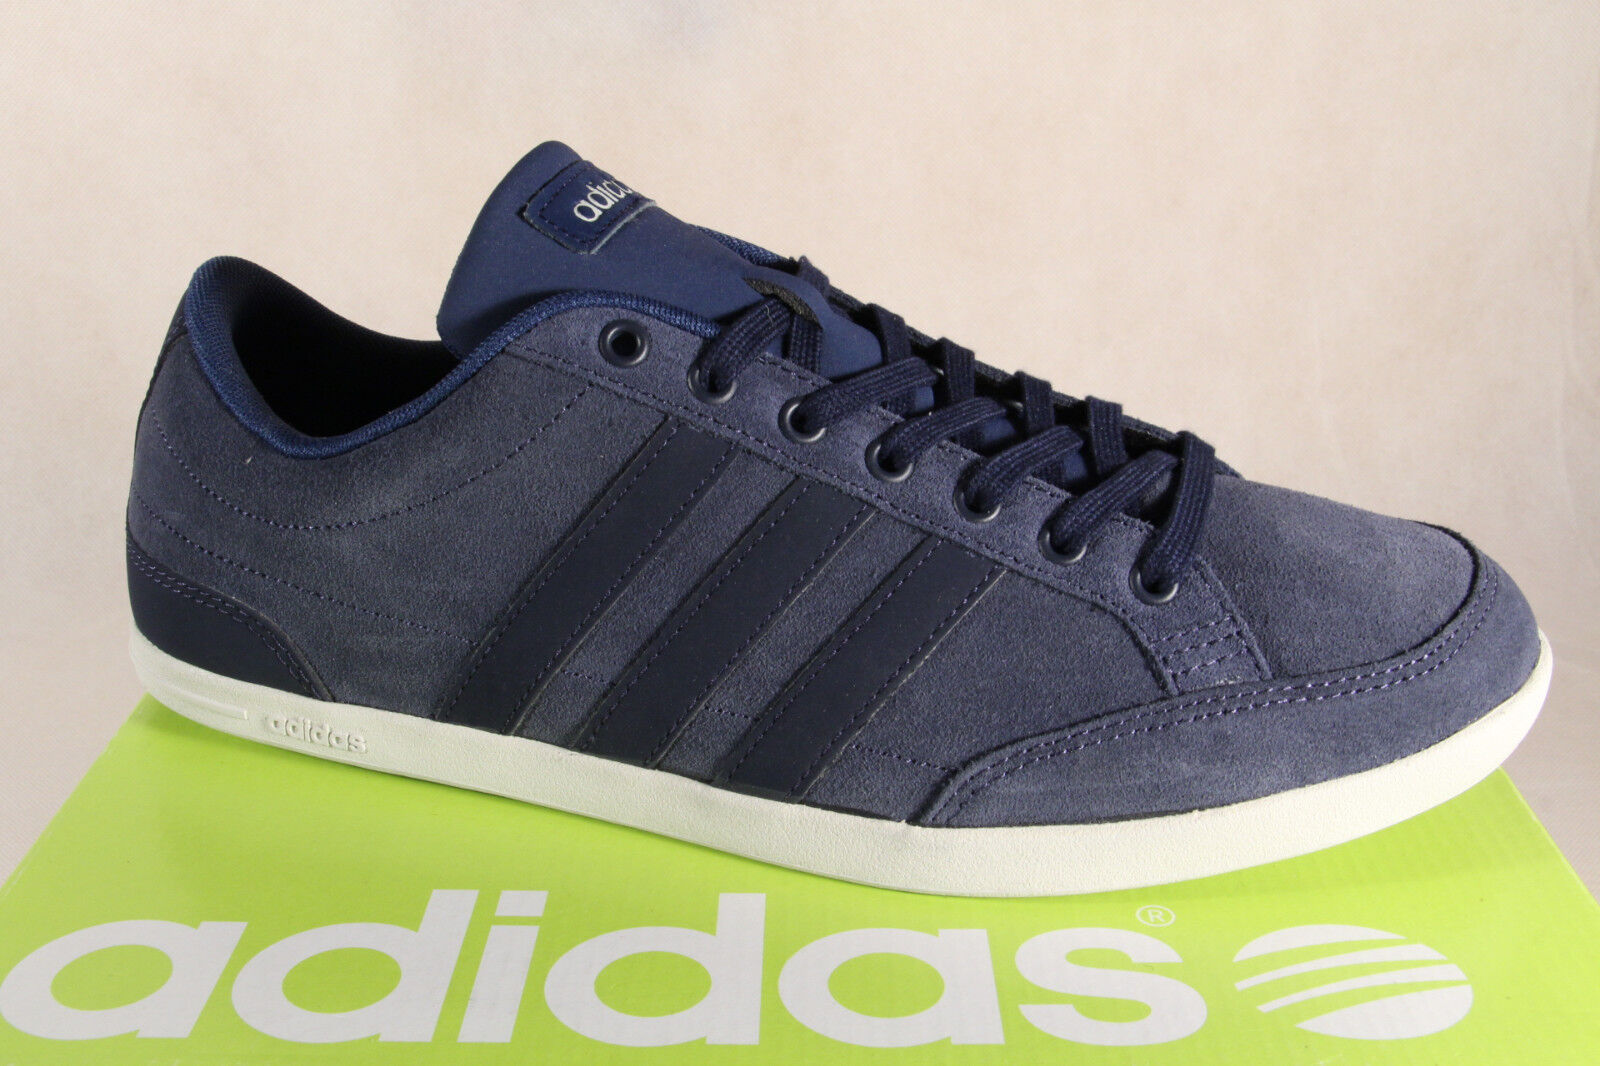 Adidas à Lacets Baskets chaussures chaussures Caflaire Cuir bleu Neuf